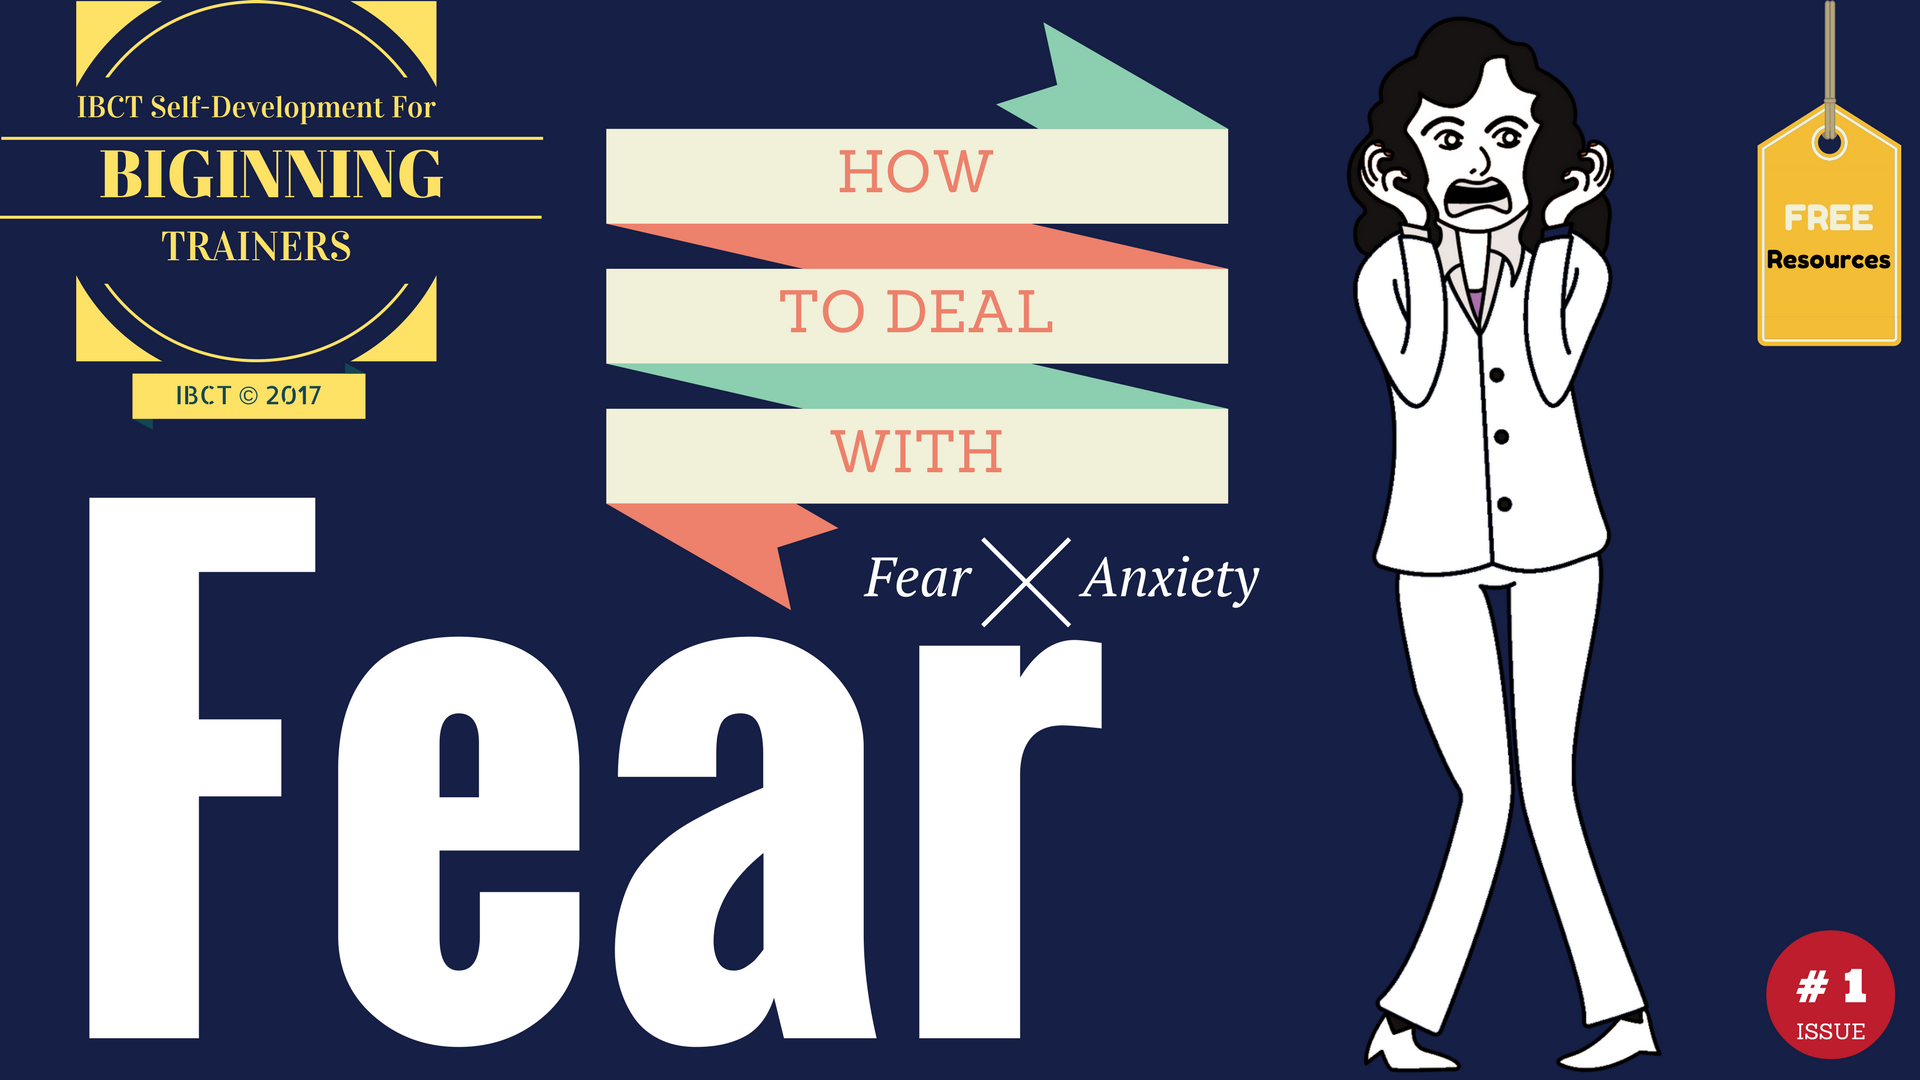 IBCT tips om how to deal with fear and anxiety.